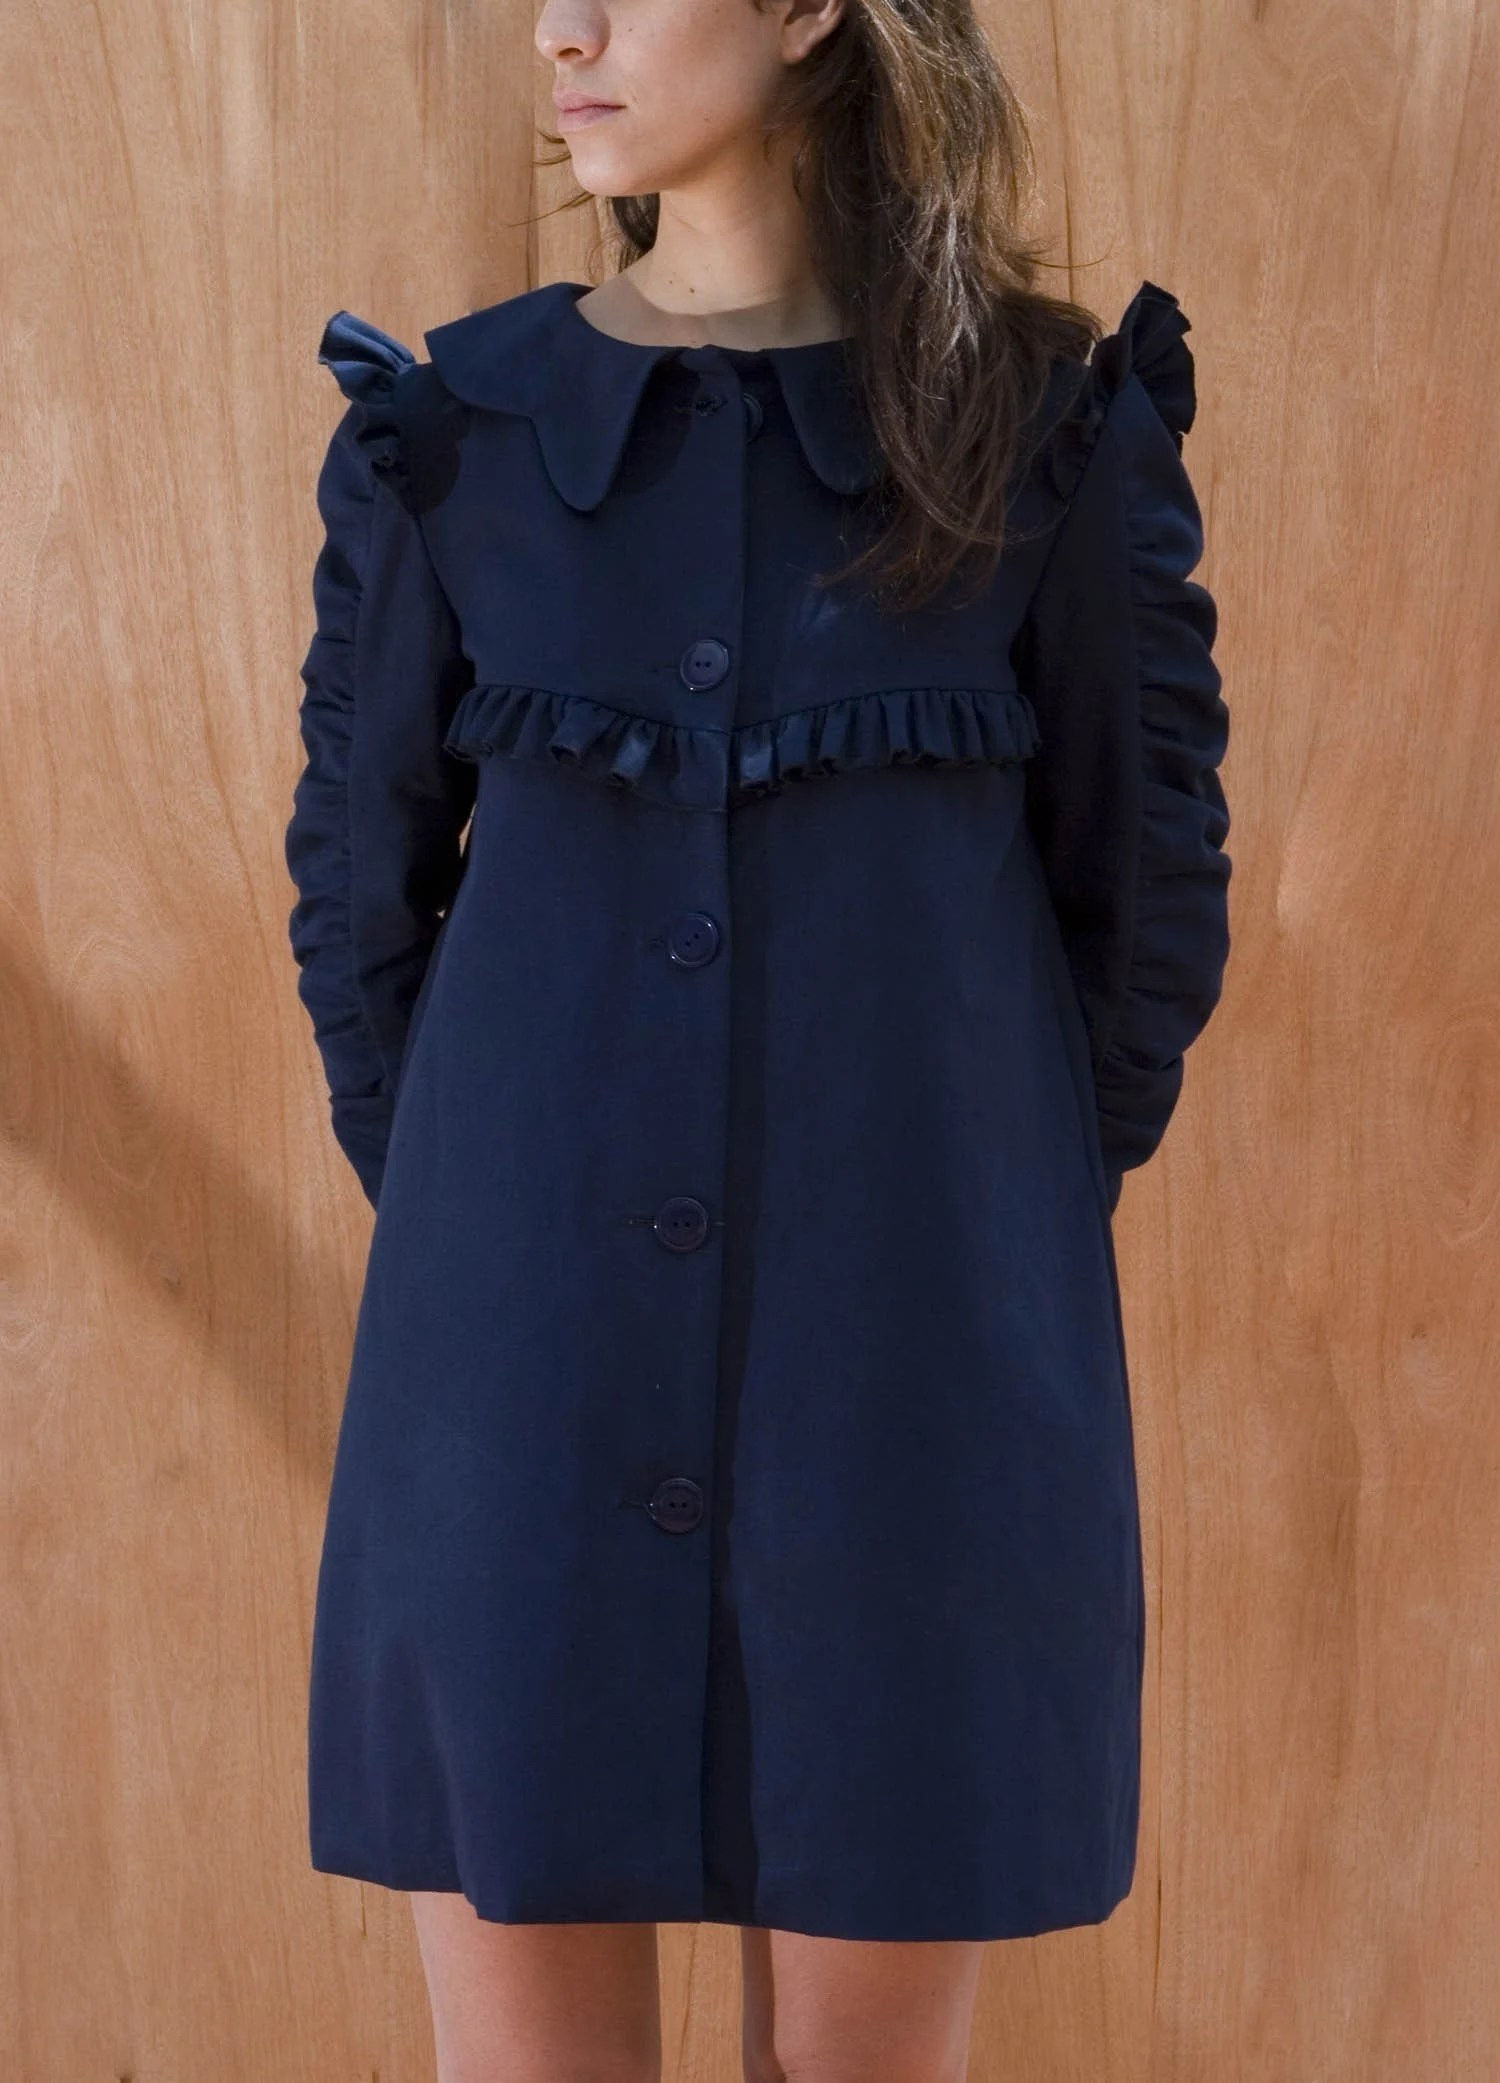 ROMANTIC 3/4 SLEEVES Lined COAT